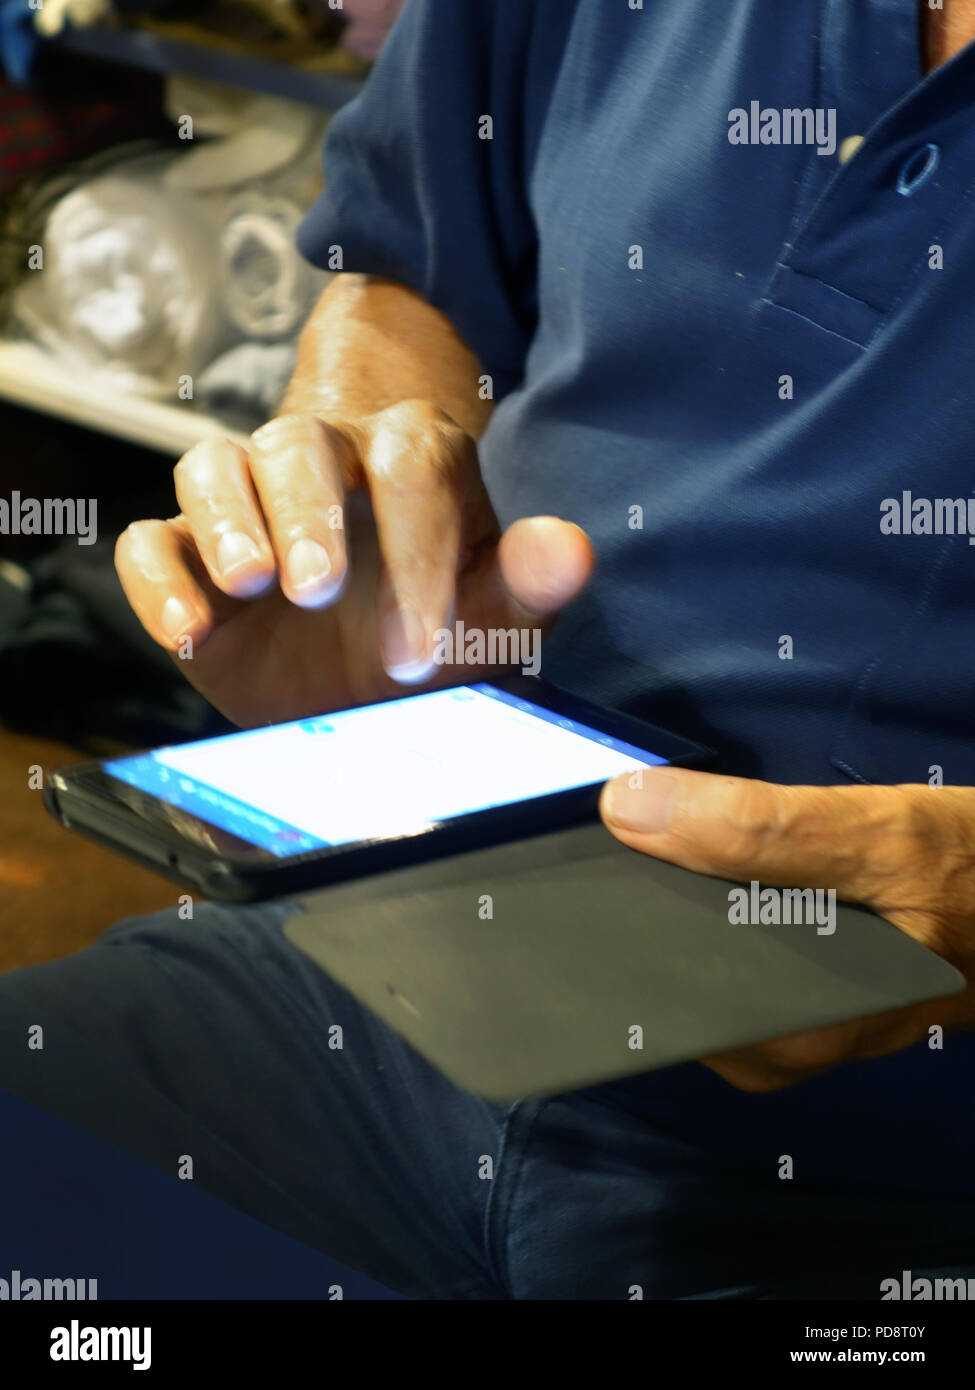 retired man using a smartphone indoors at night, seen typing on the touch screen. - Stock Image